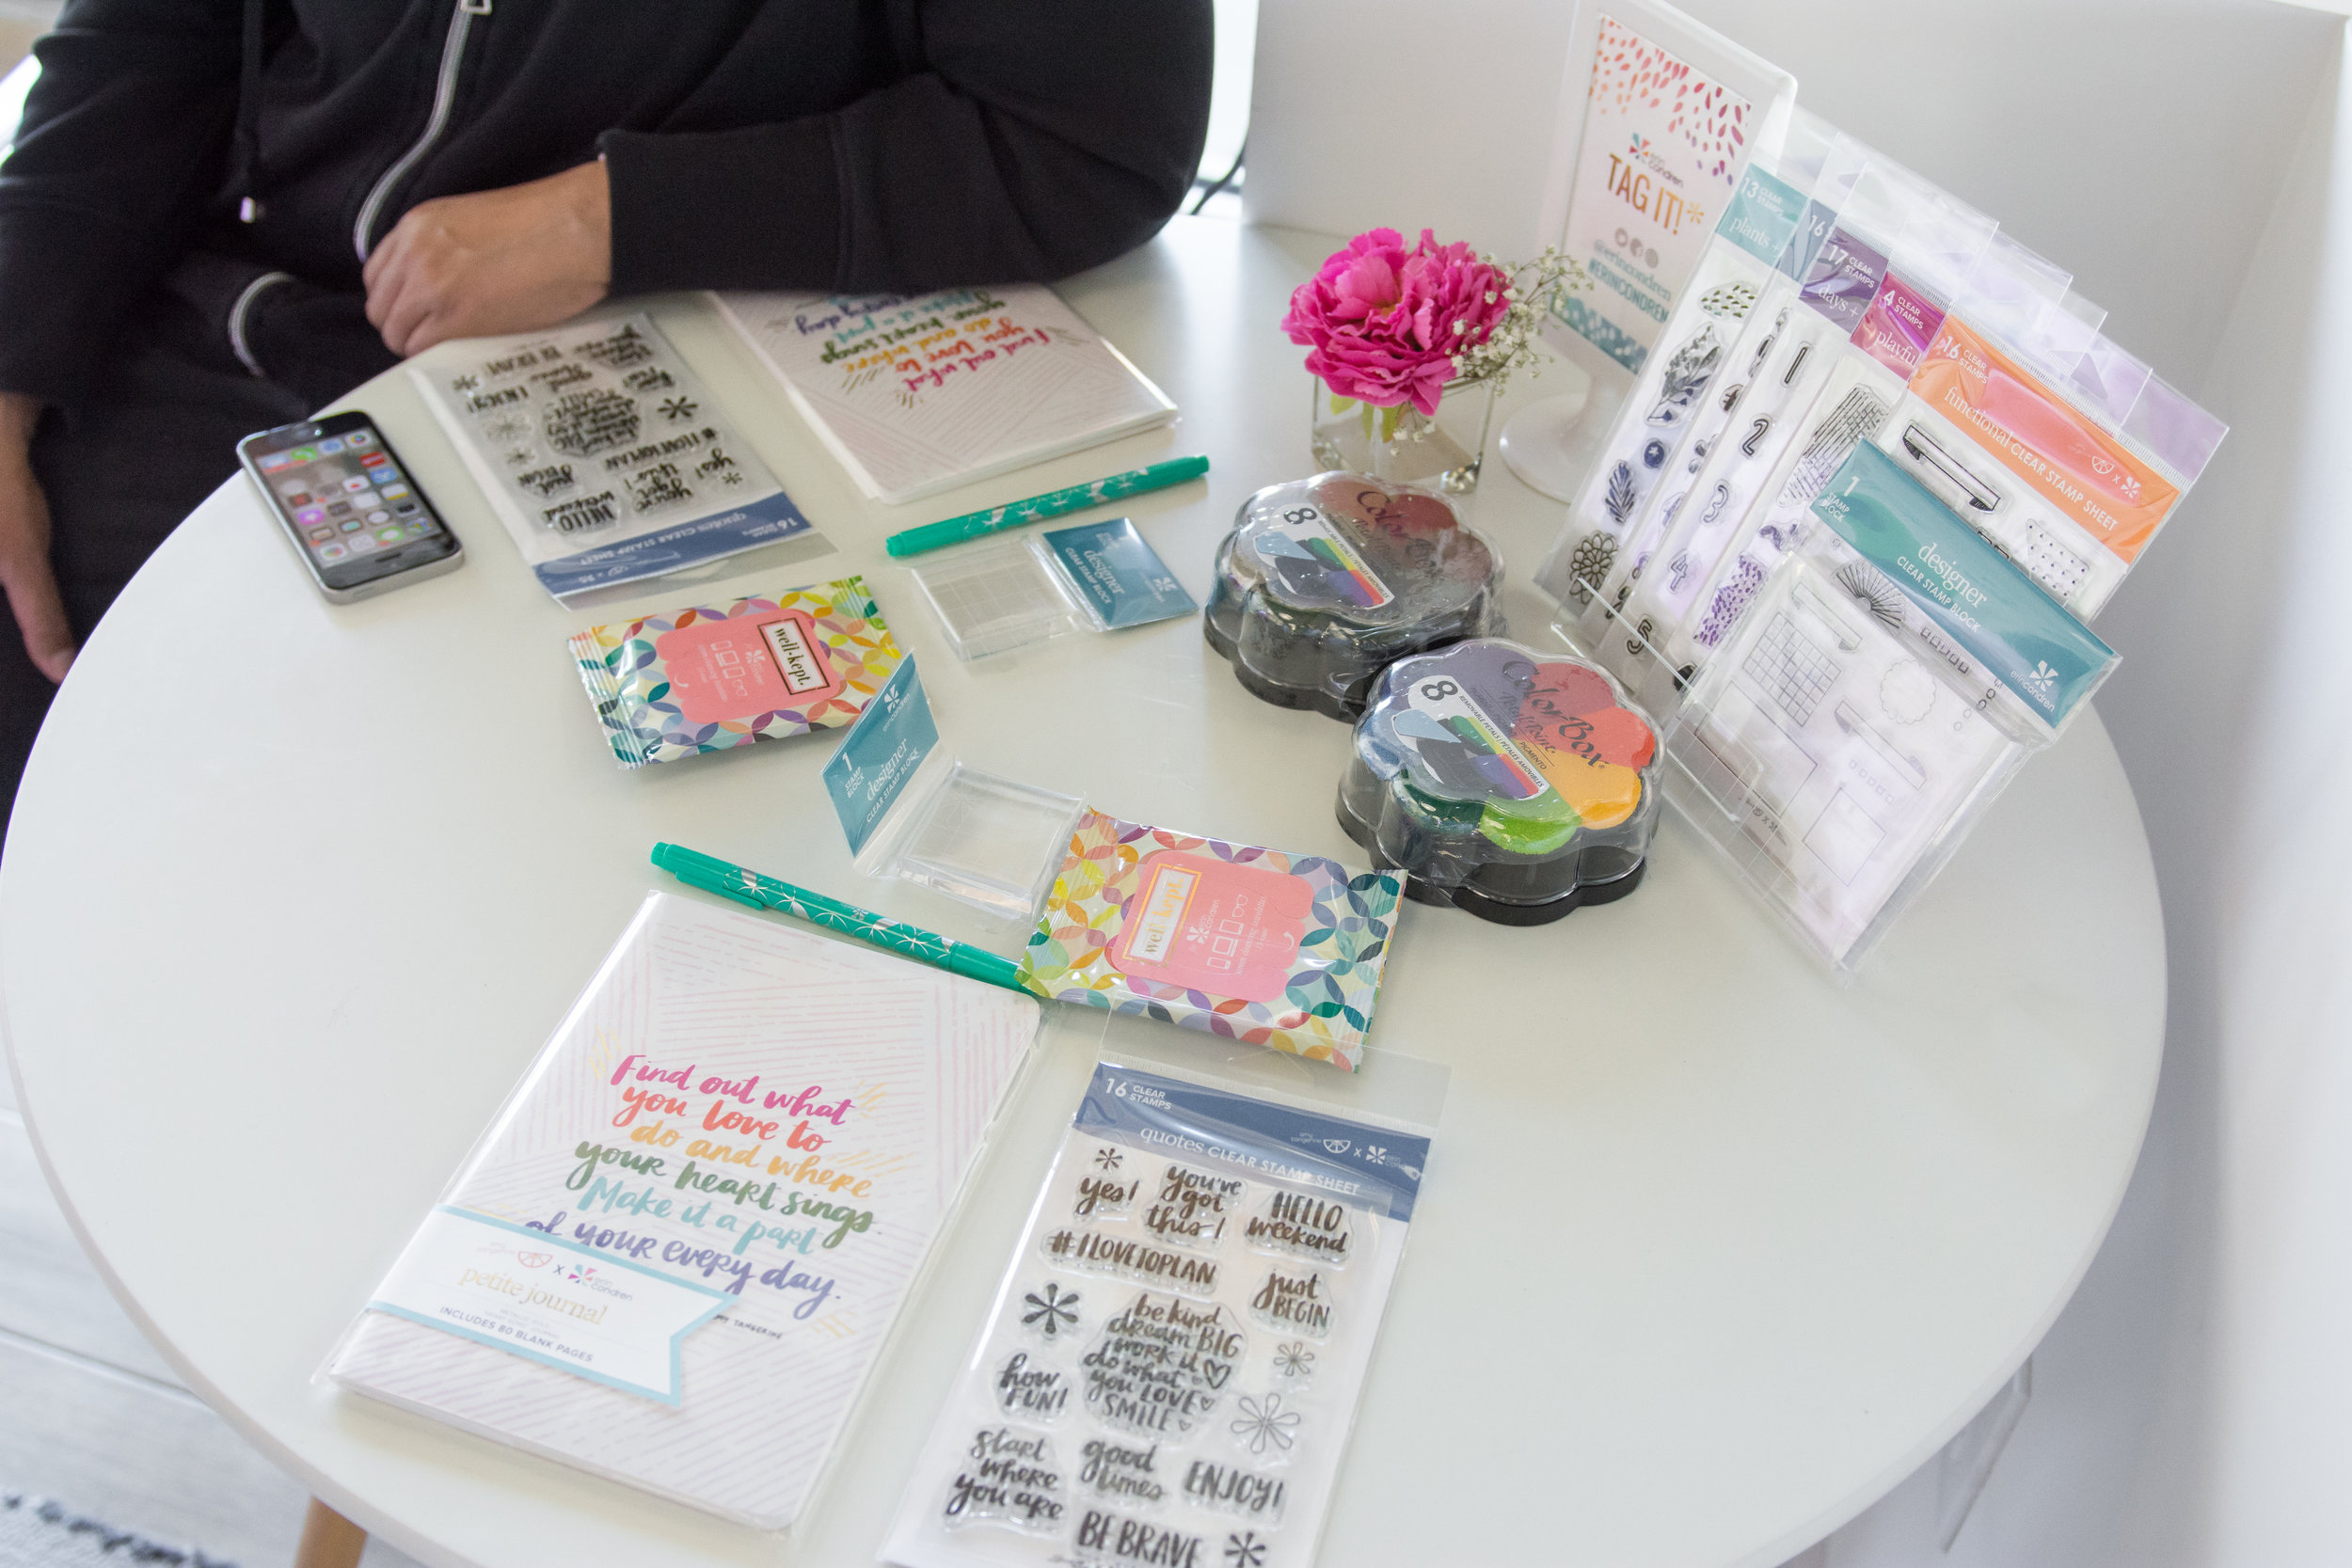 Highlights from the Erin Condren Workshop